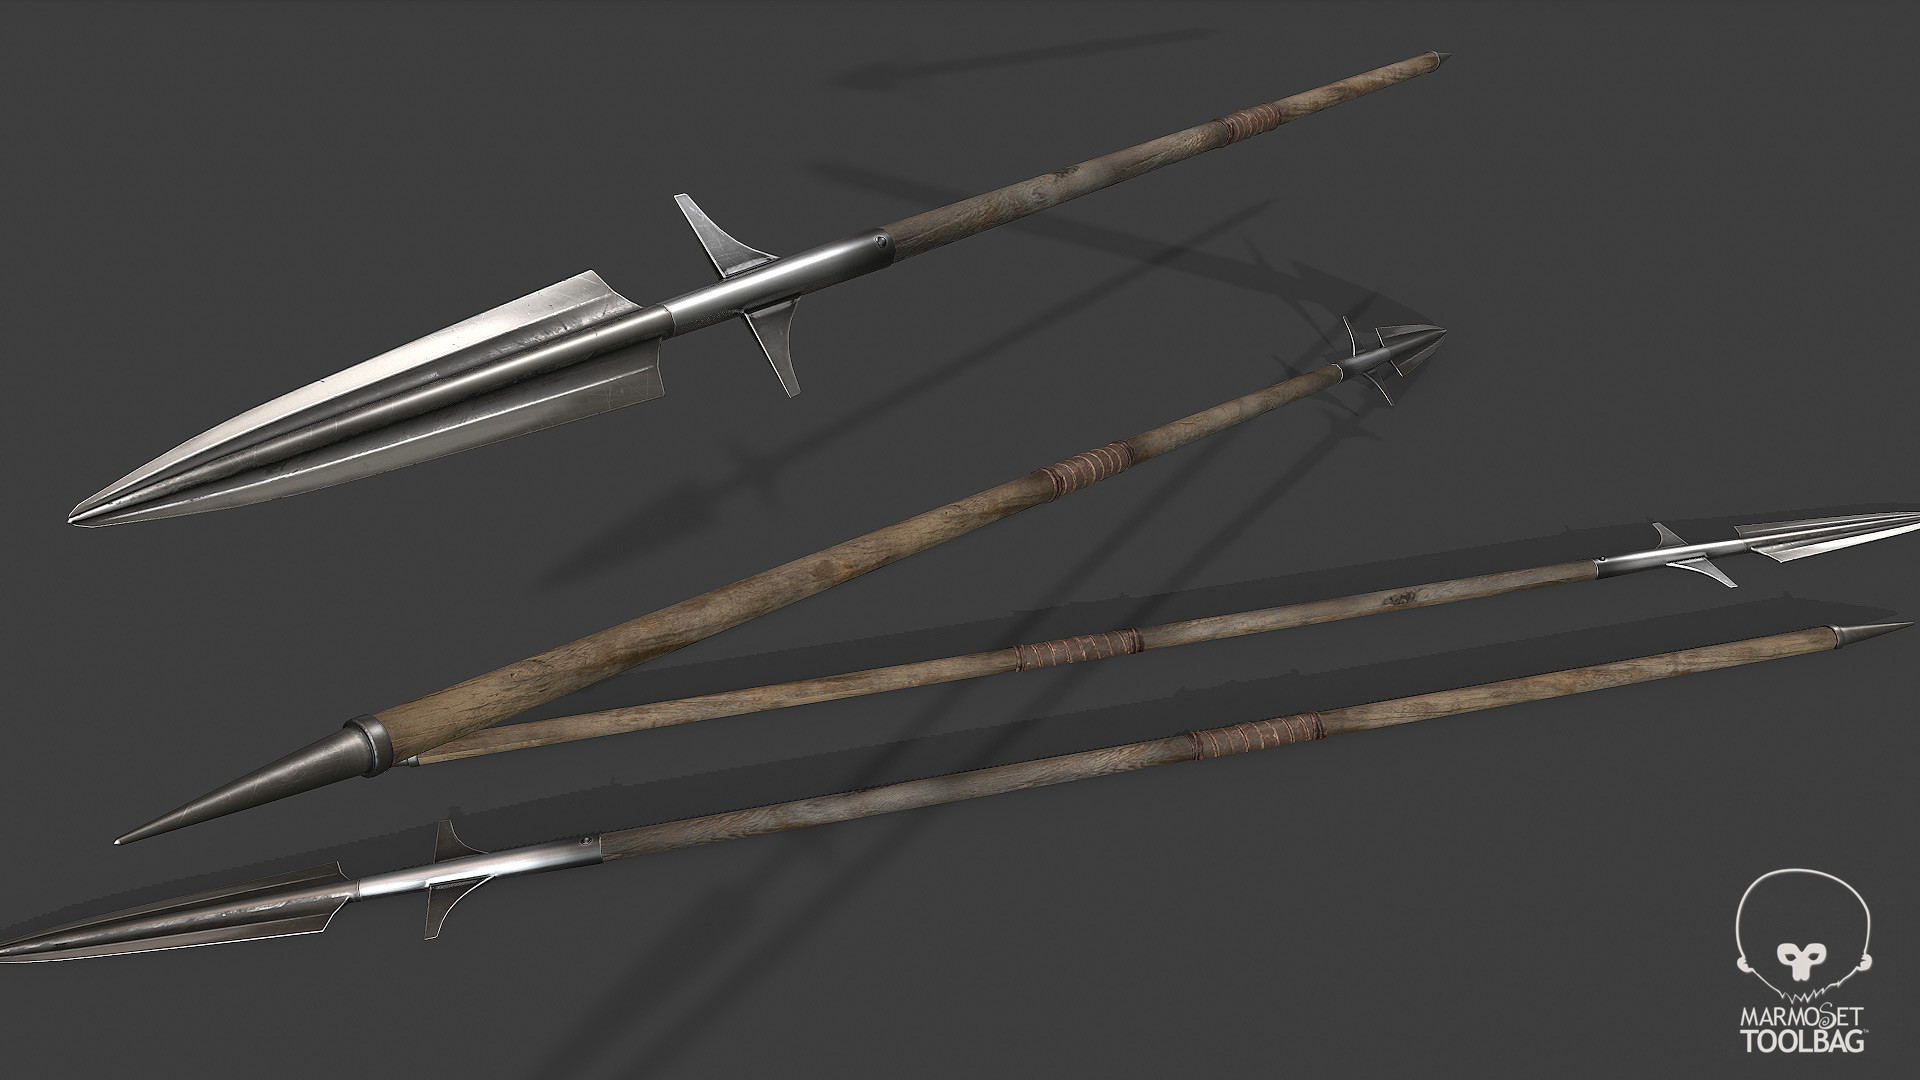 Spear (Based on the lugged spear design)